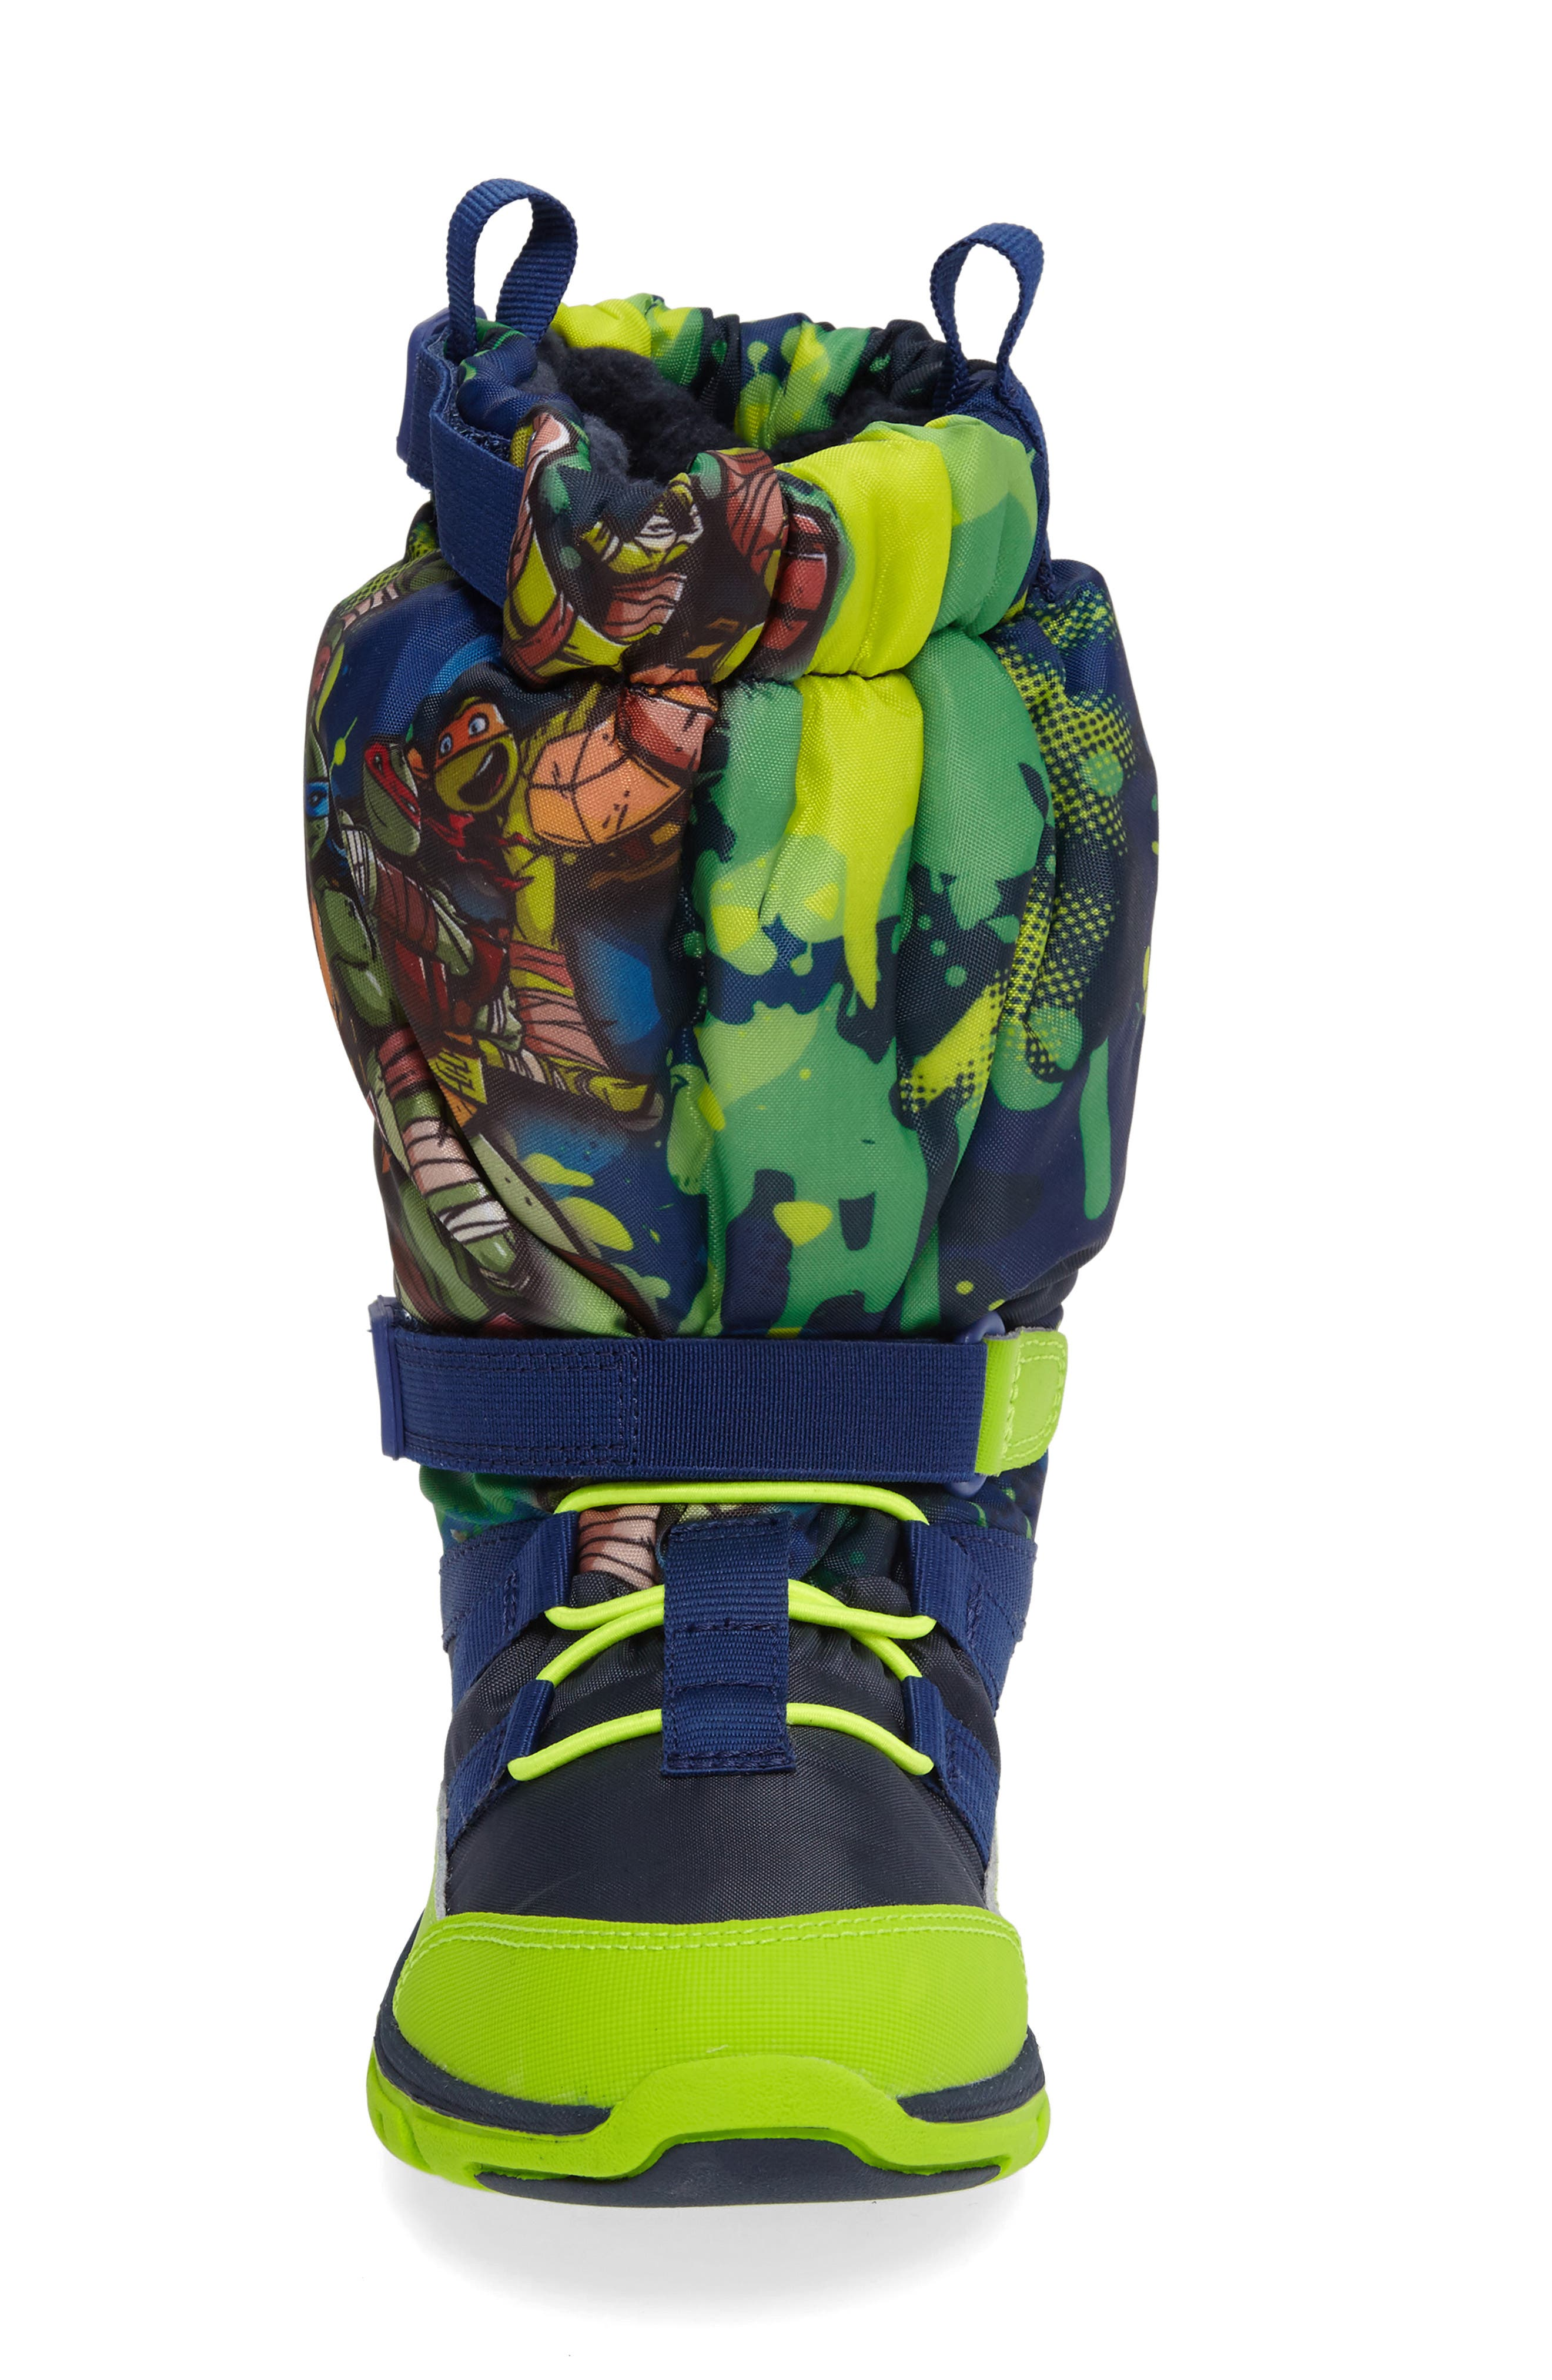 Alternate Image 3  - Stride Rite Made2Play Teenage Mutant Ninja Turtles Sneaker Boot (Baby, Walker, Toddler & Little Kid)